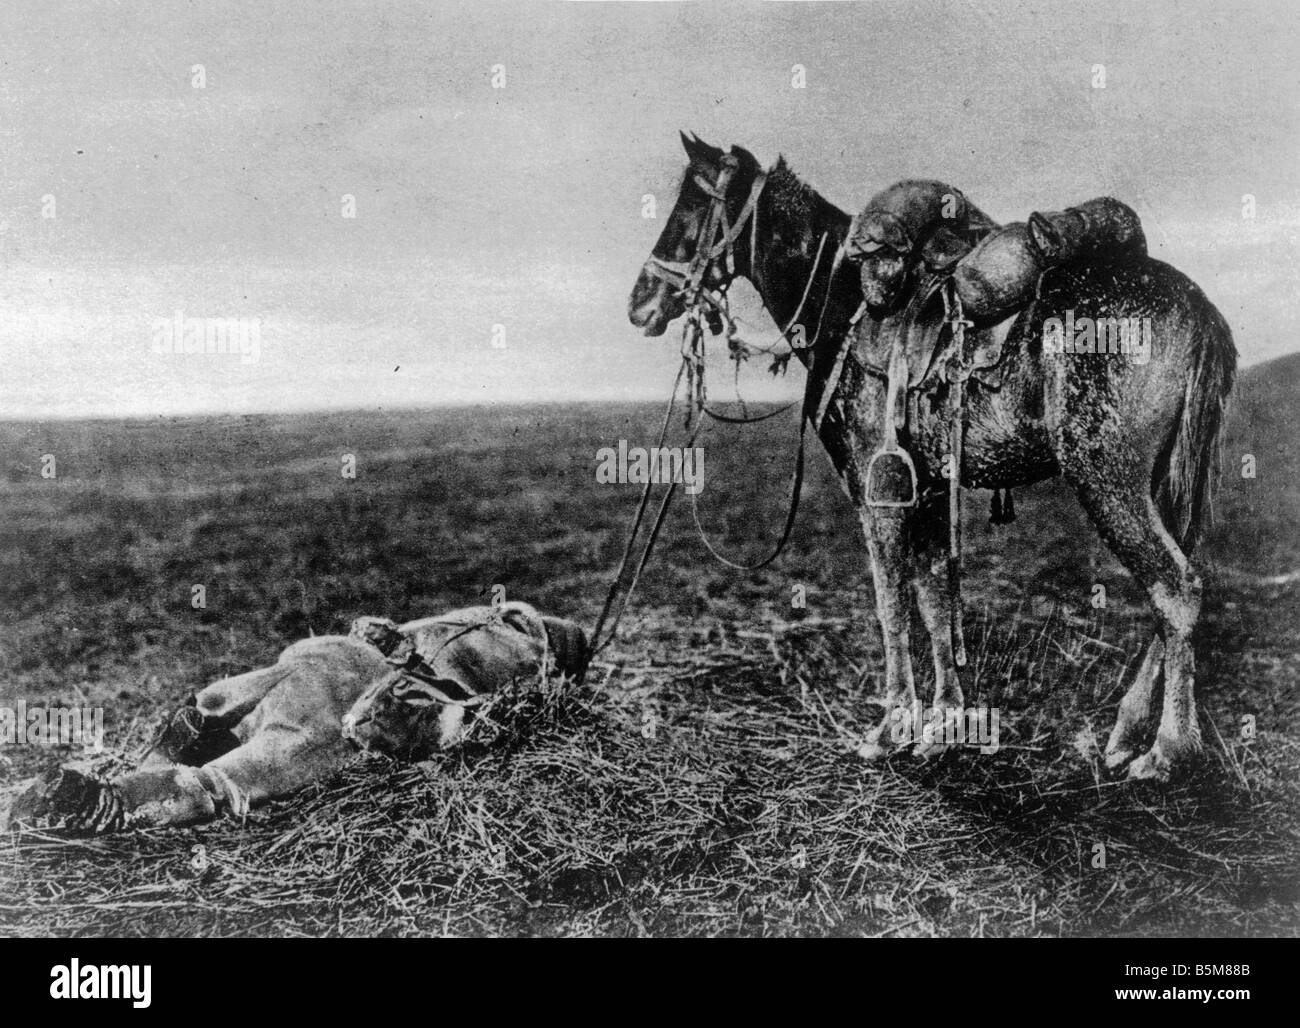 2 G55 B2 1916 16 WWI Balkans Fallen soldier and horse History World War I The Balkans A fallen soldier and his trusted - Stock Image